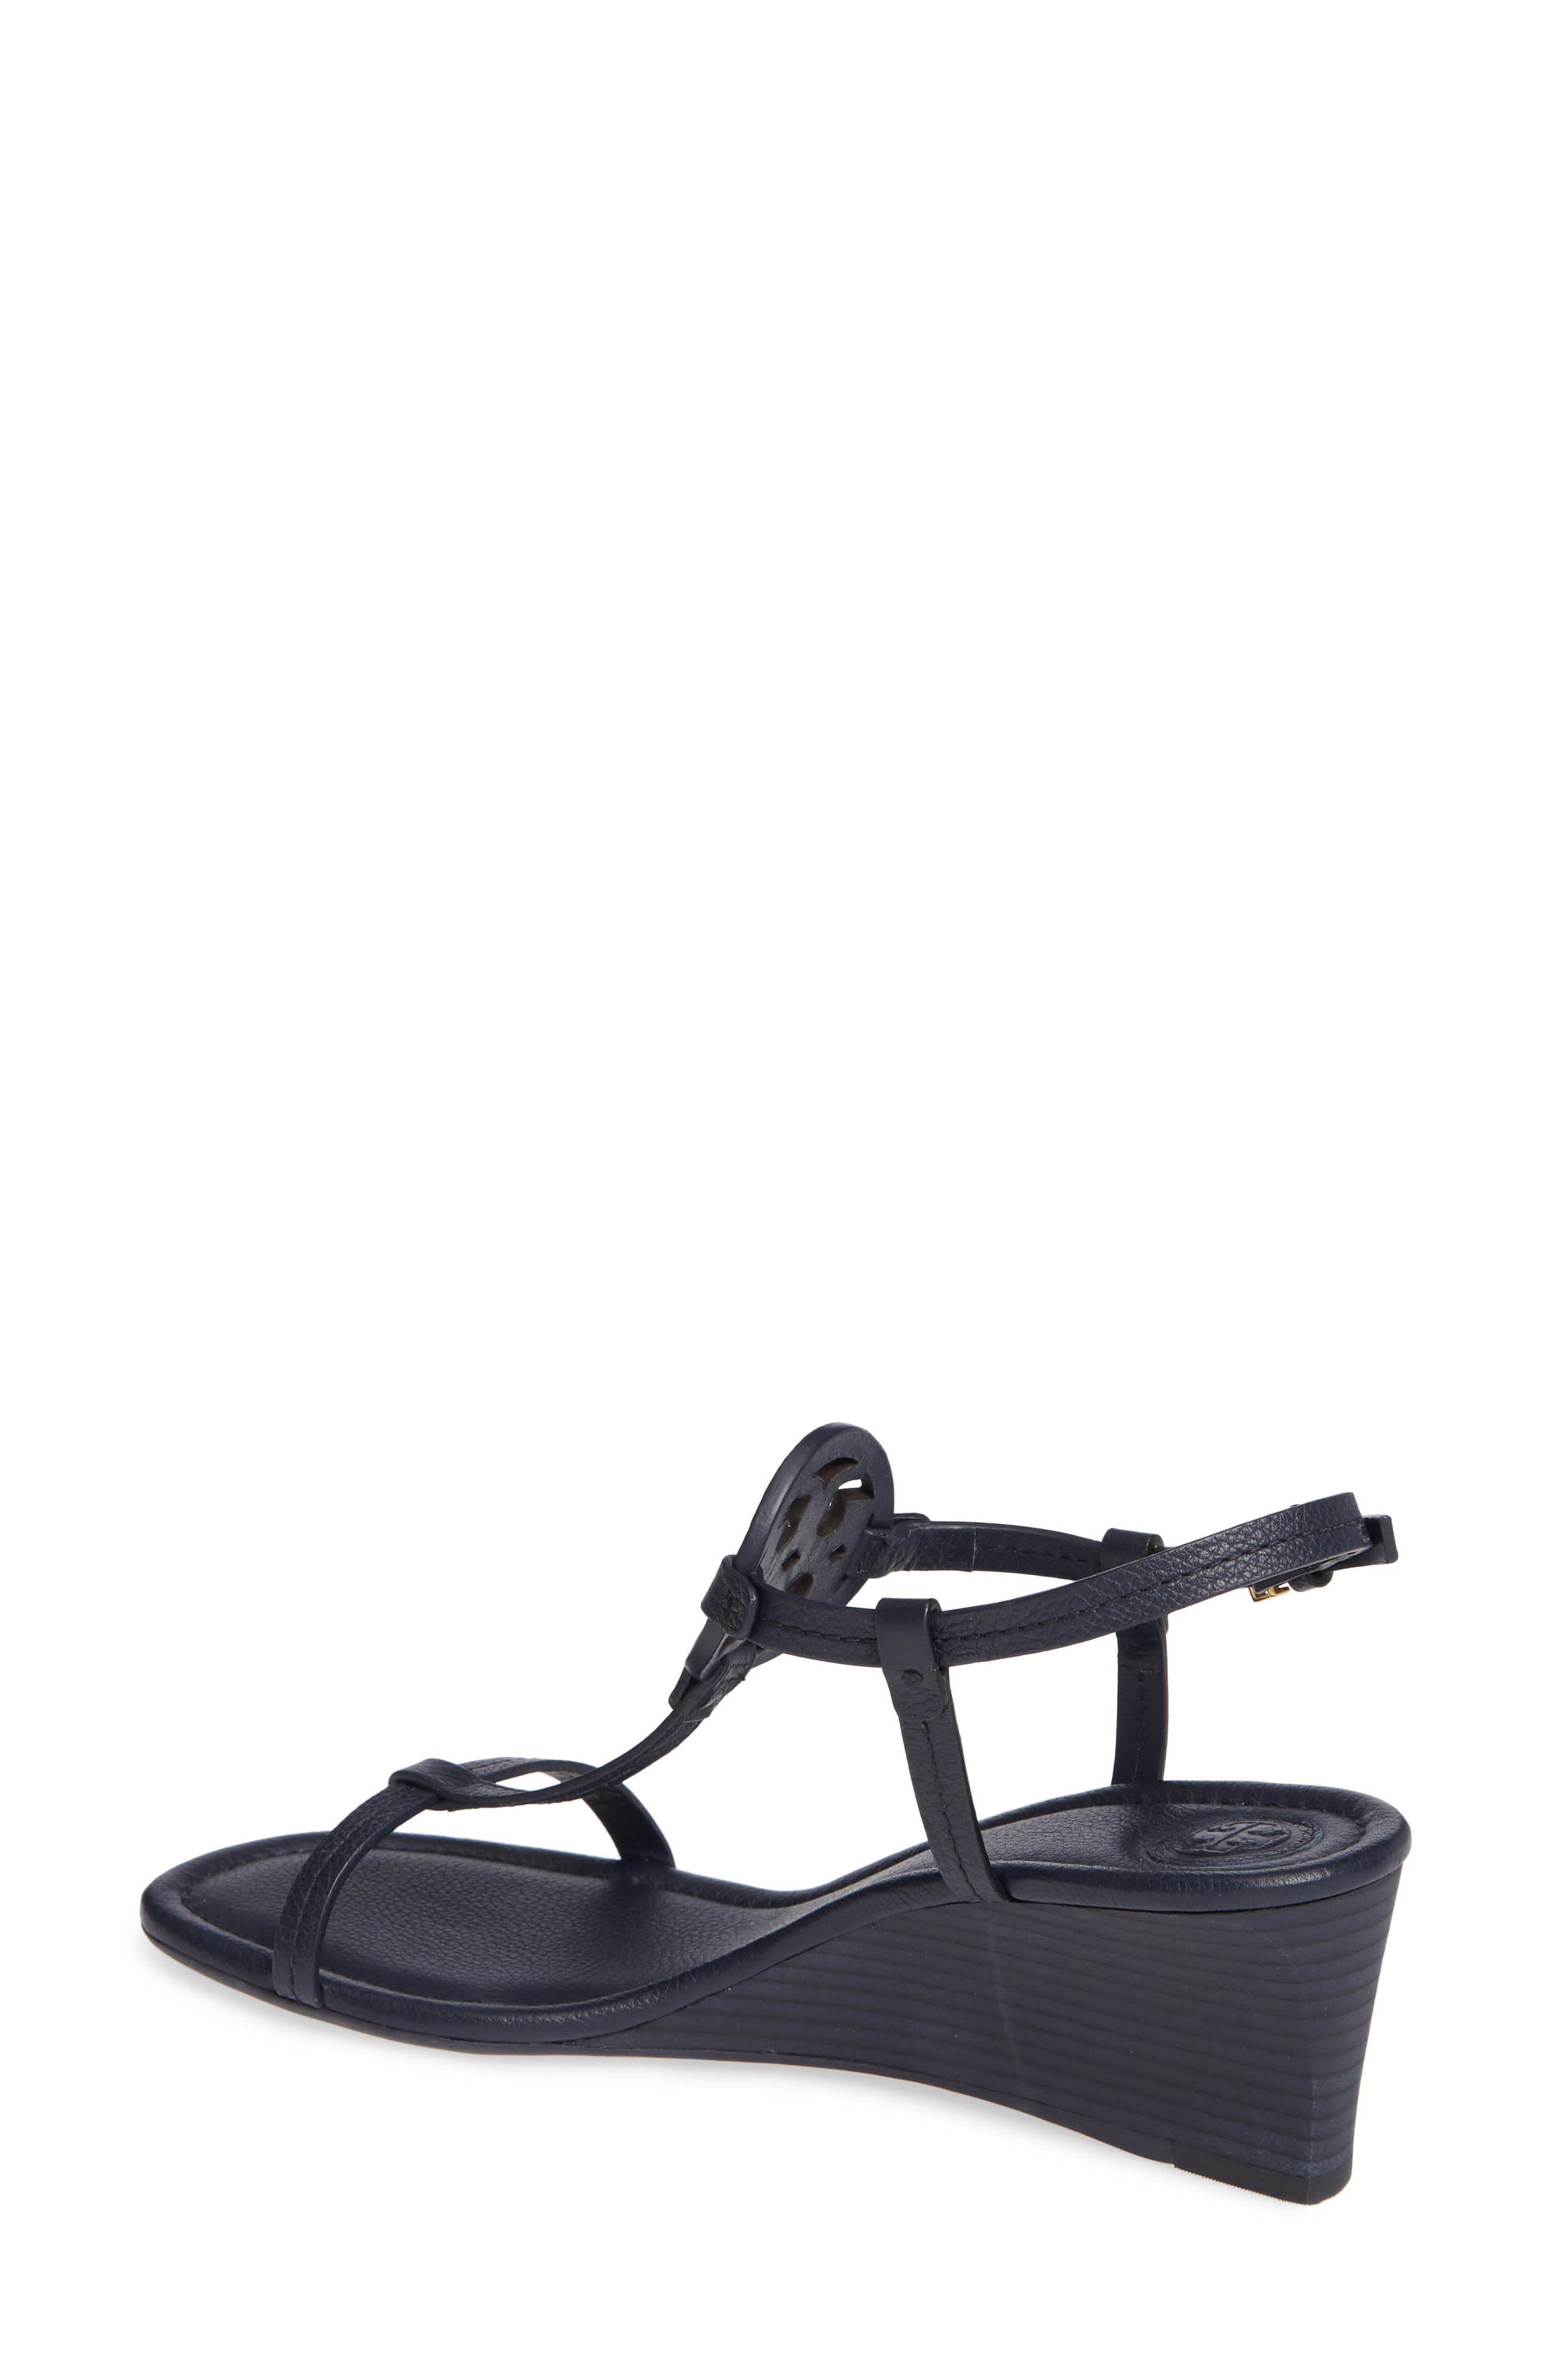 TORY BURCH, Miller Wedge Sandal, Alternate thumbnail 2, color, PERFECT NAVY